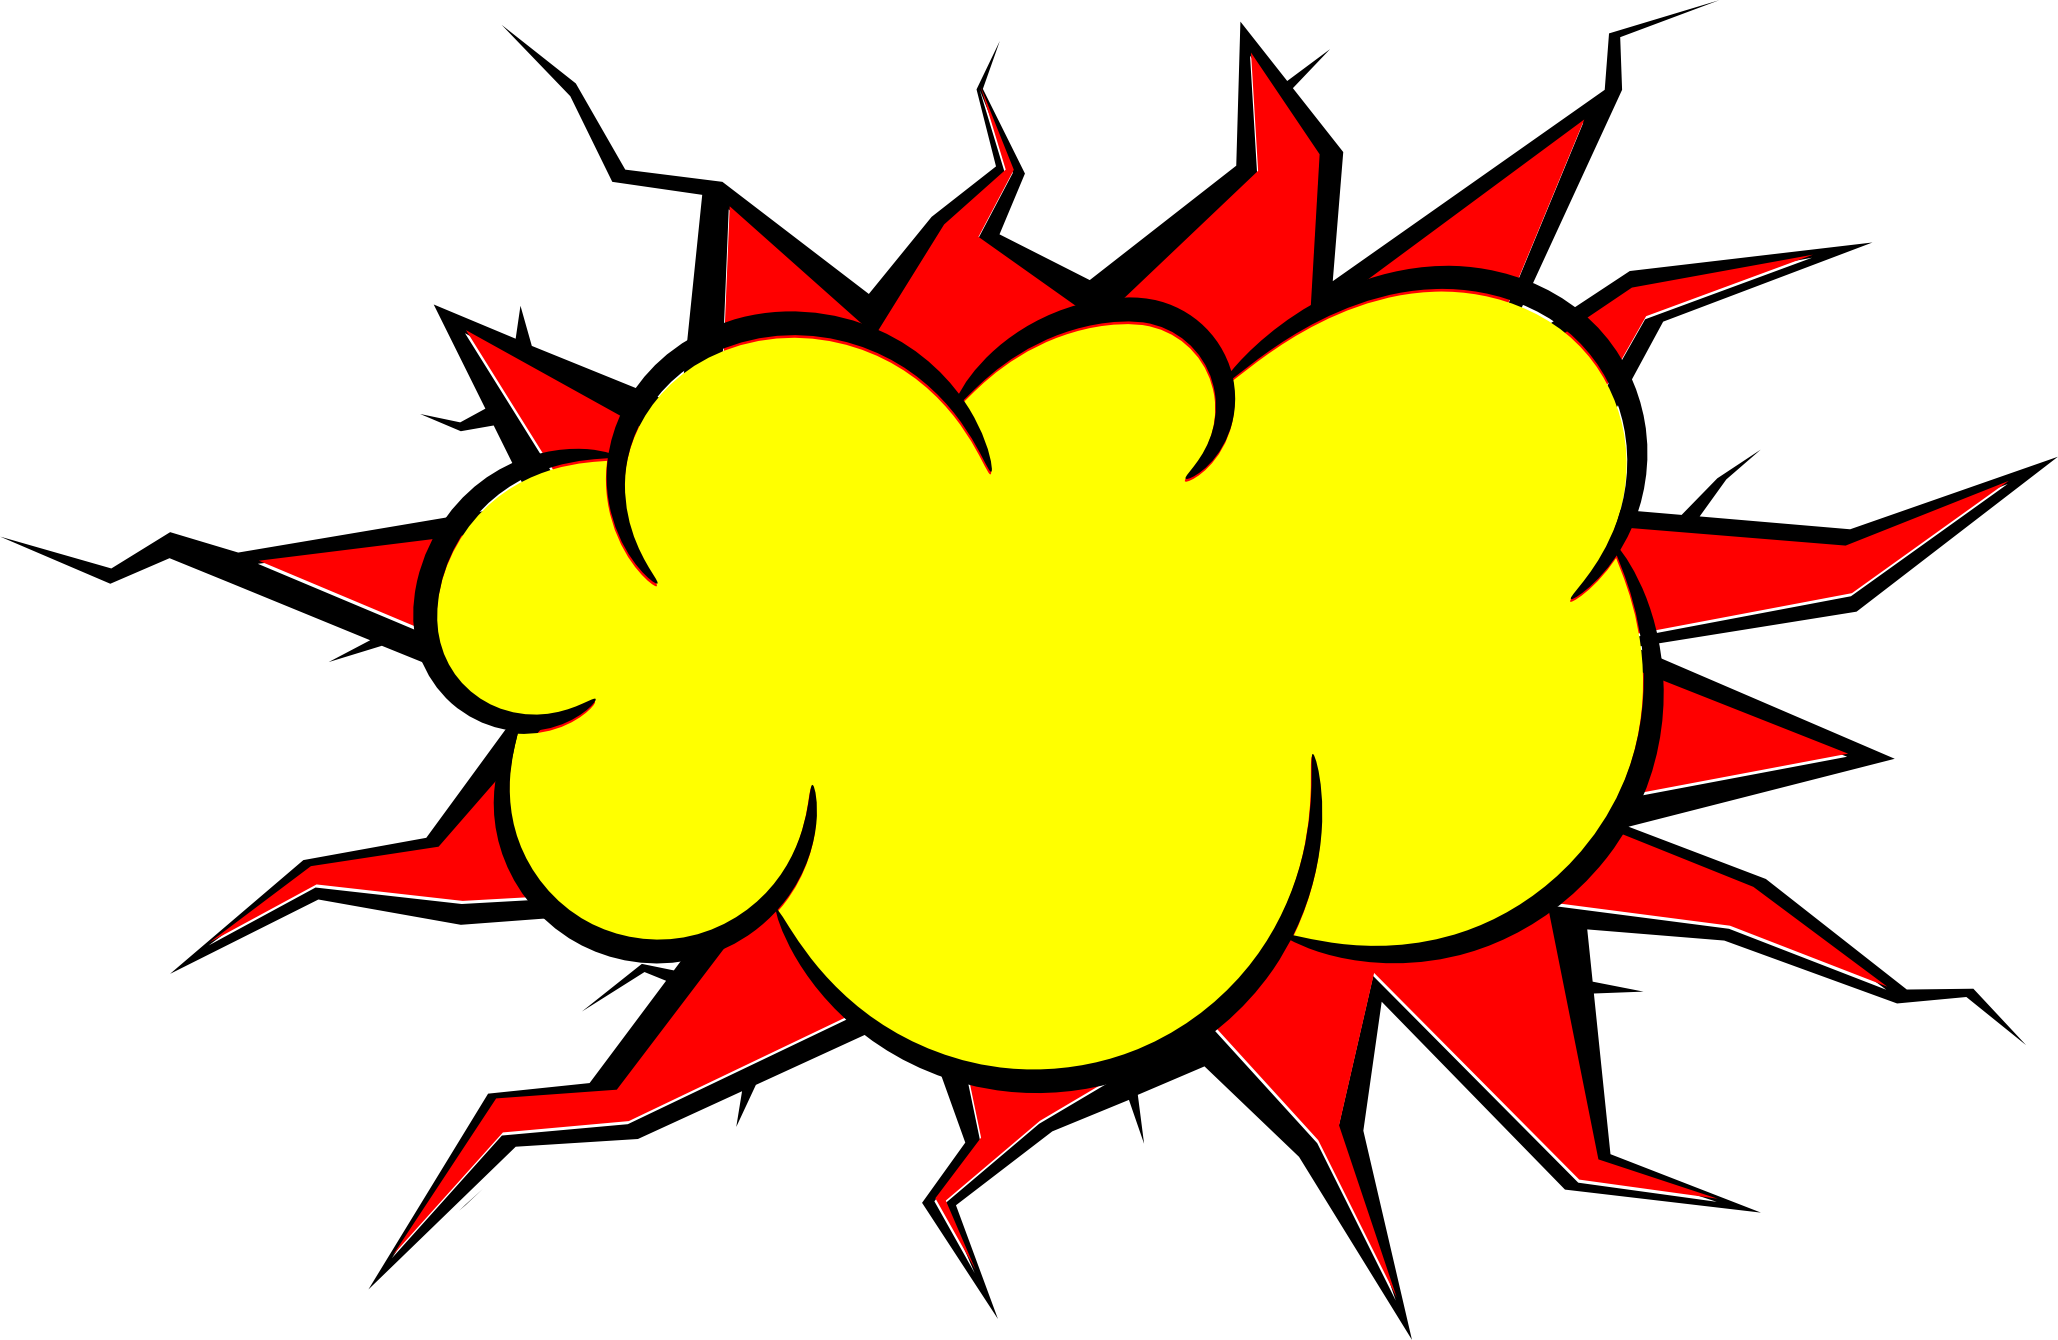 comic explosion bubble png transparent #14291